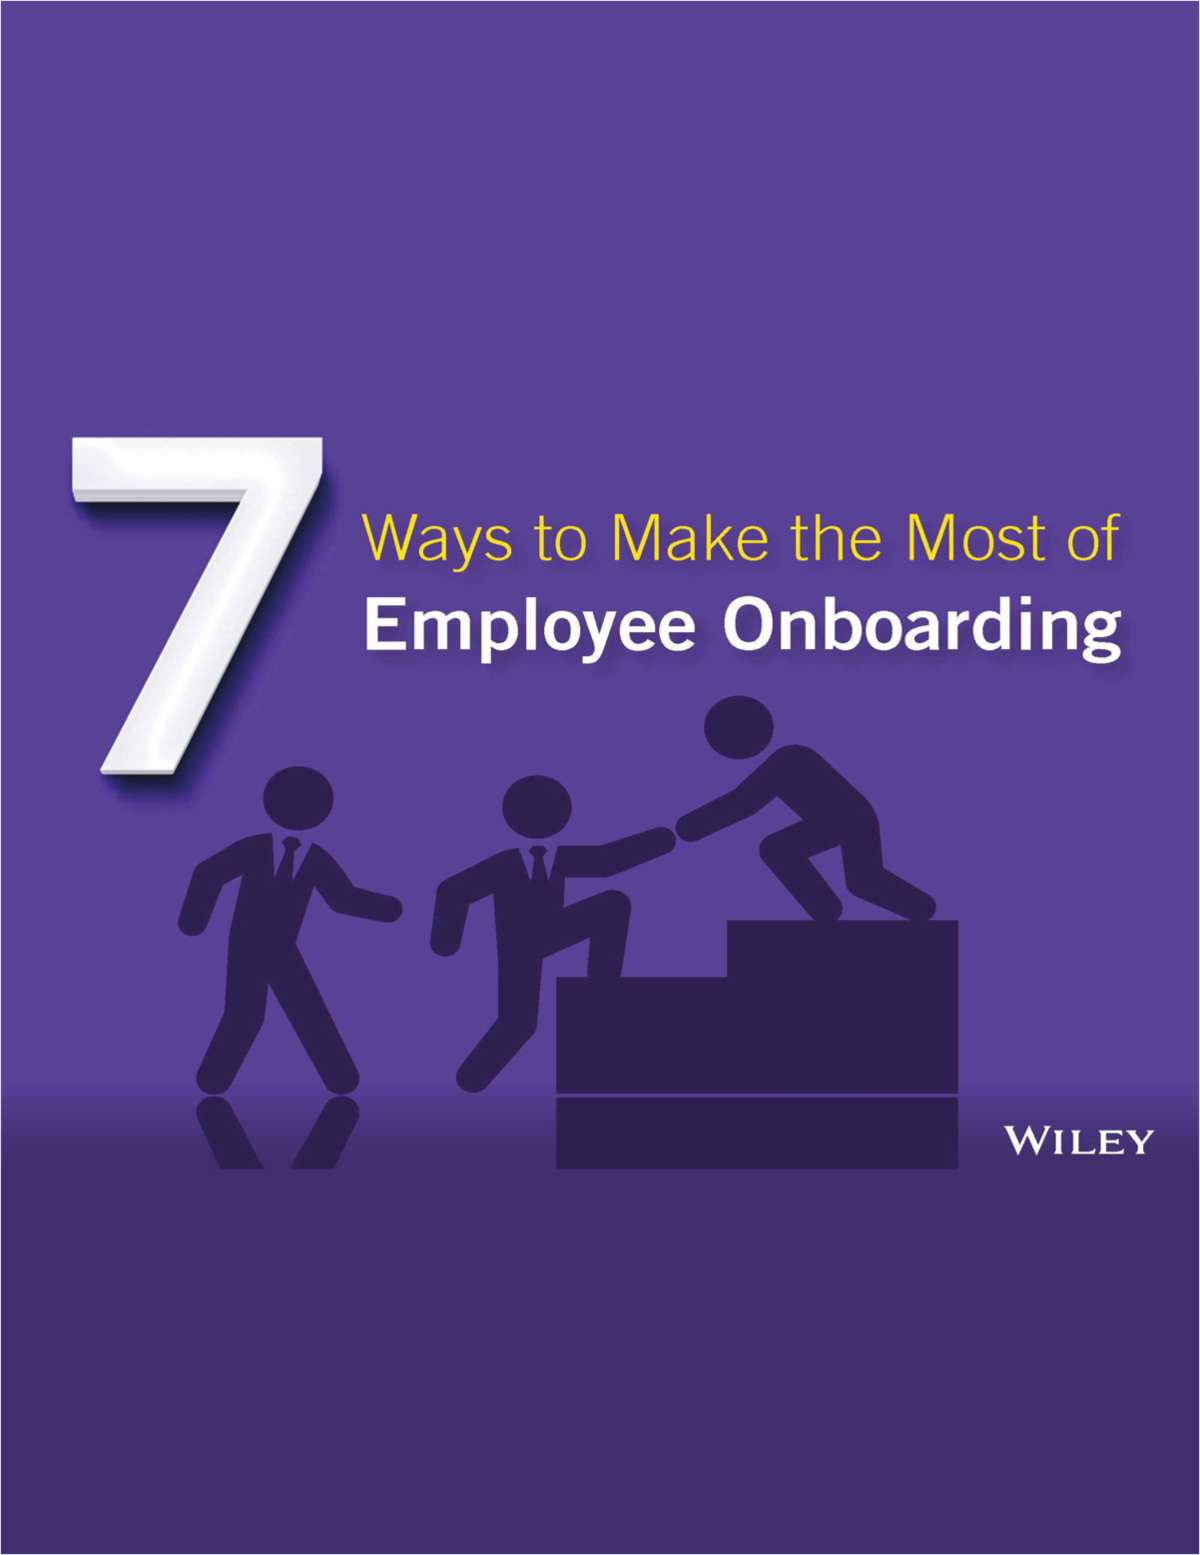 7 Ways to Make the Most of Employee Onboarding